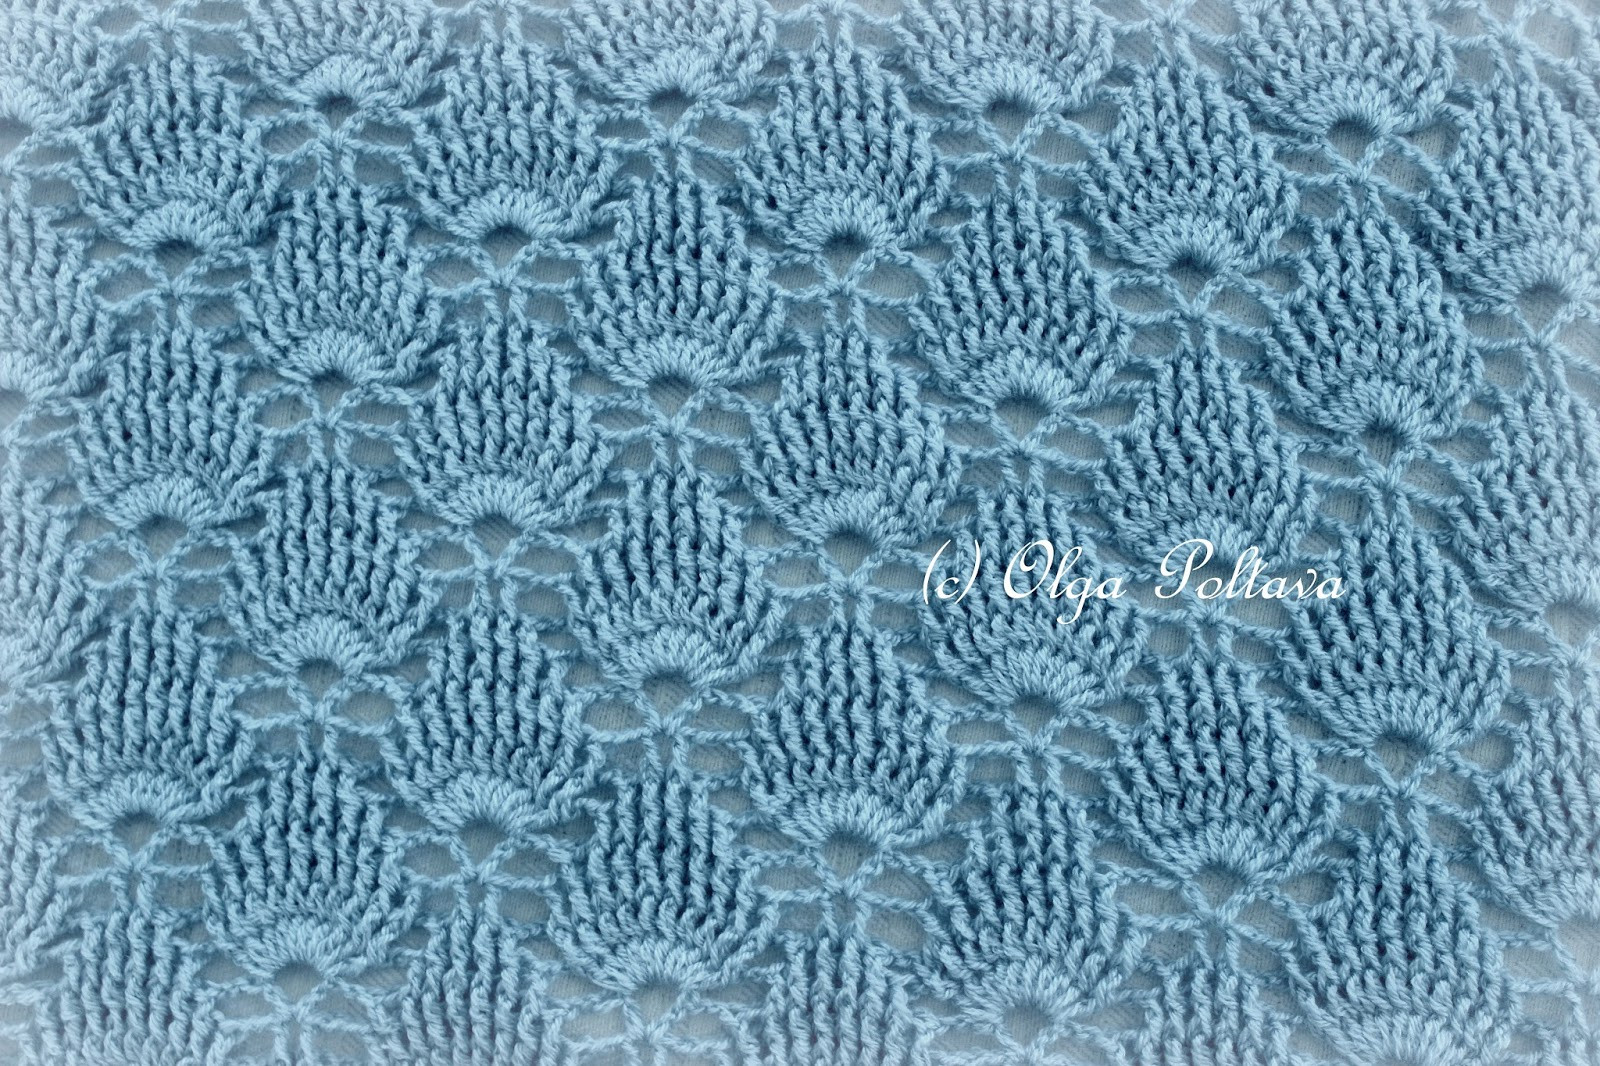 Crochet Lace Pattern Inspirational Lacy Crochet September 2016 Of Gorgeous 50 Photos Crochet Lace Pattern